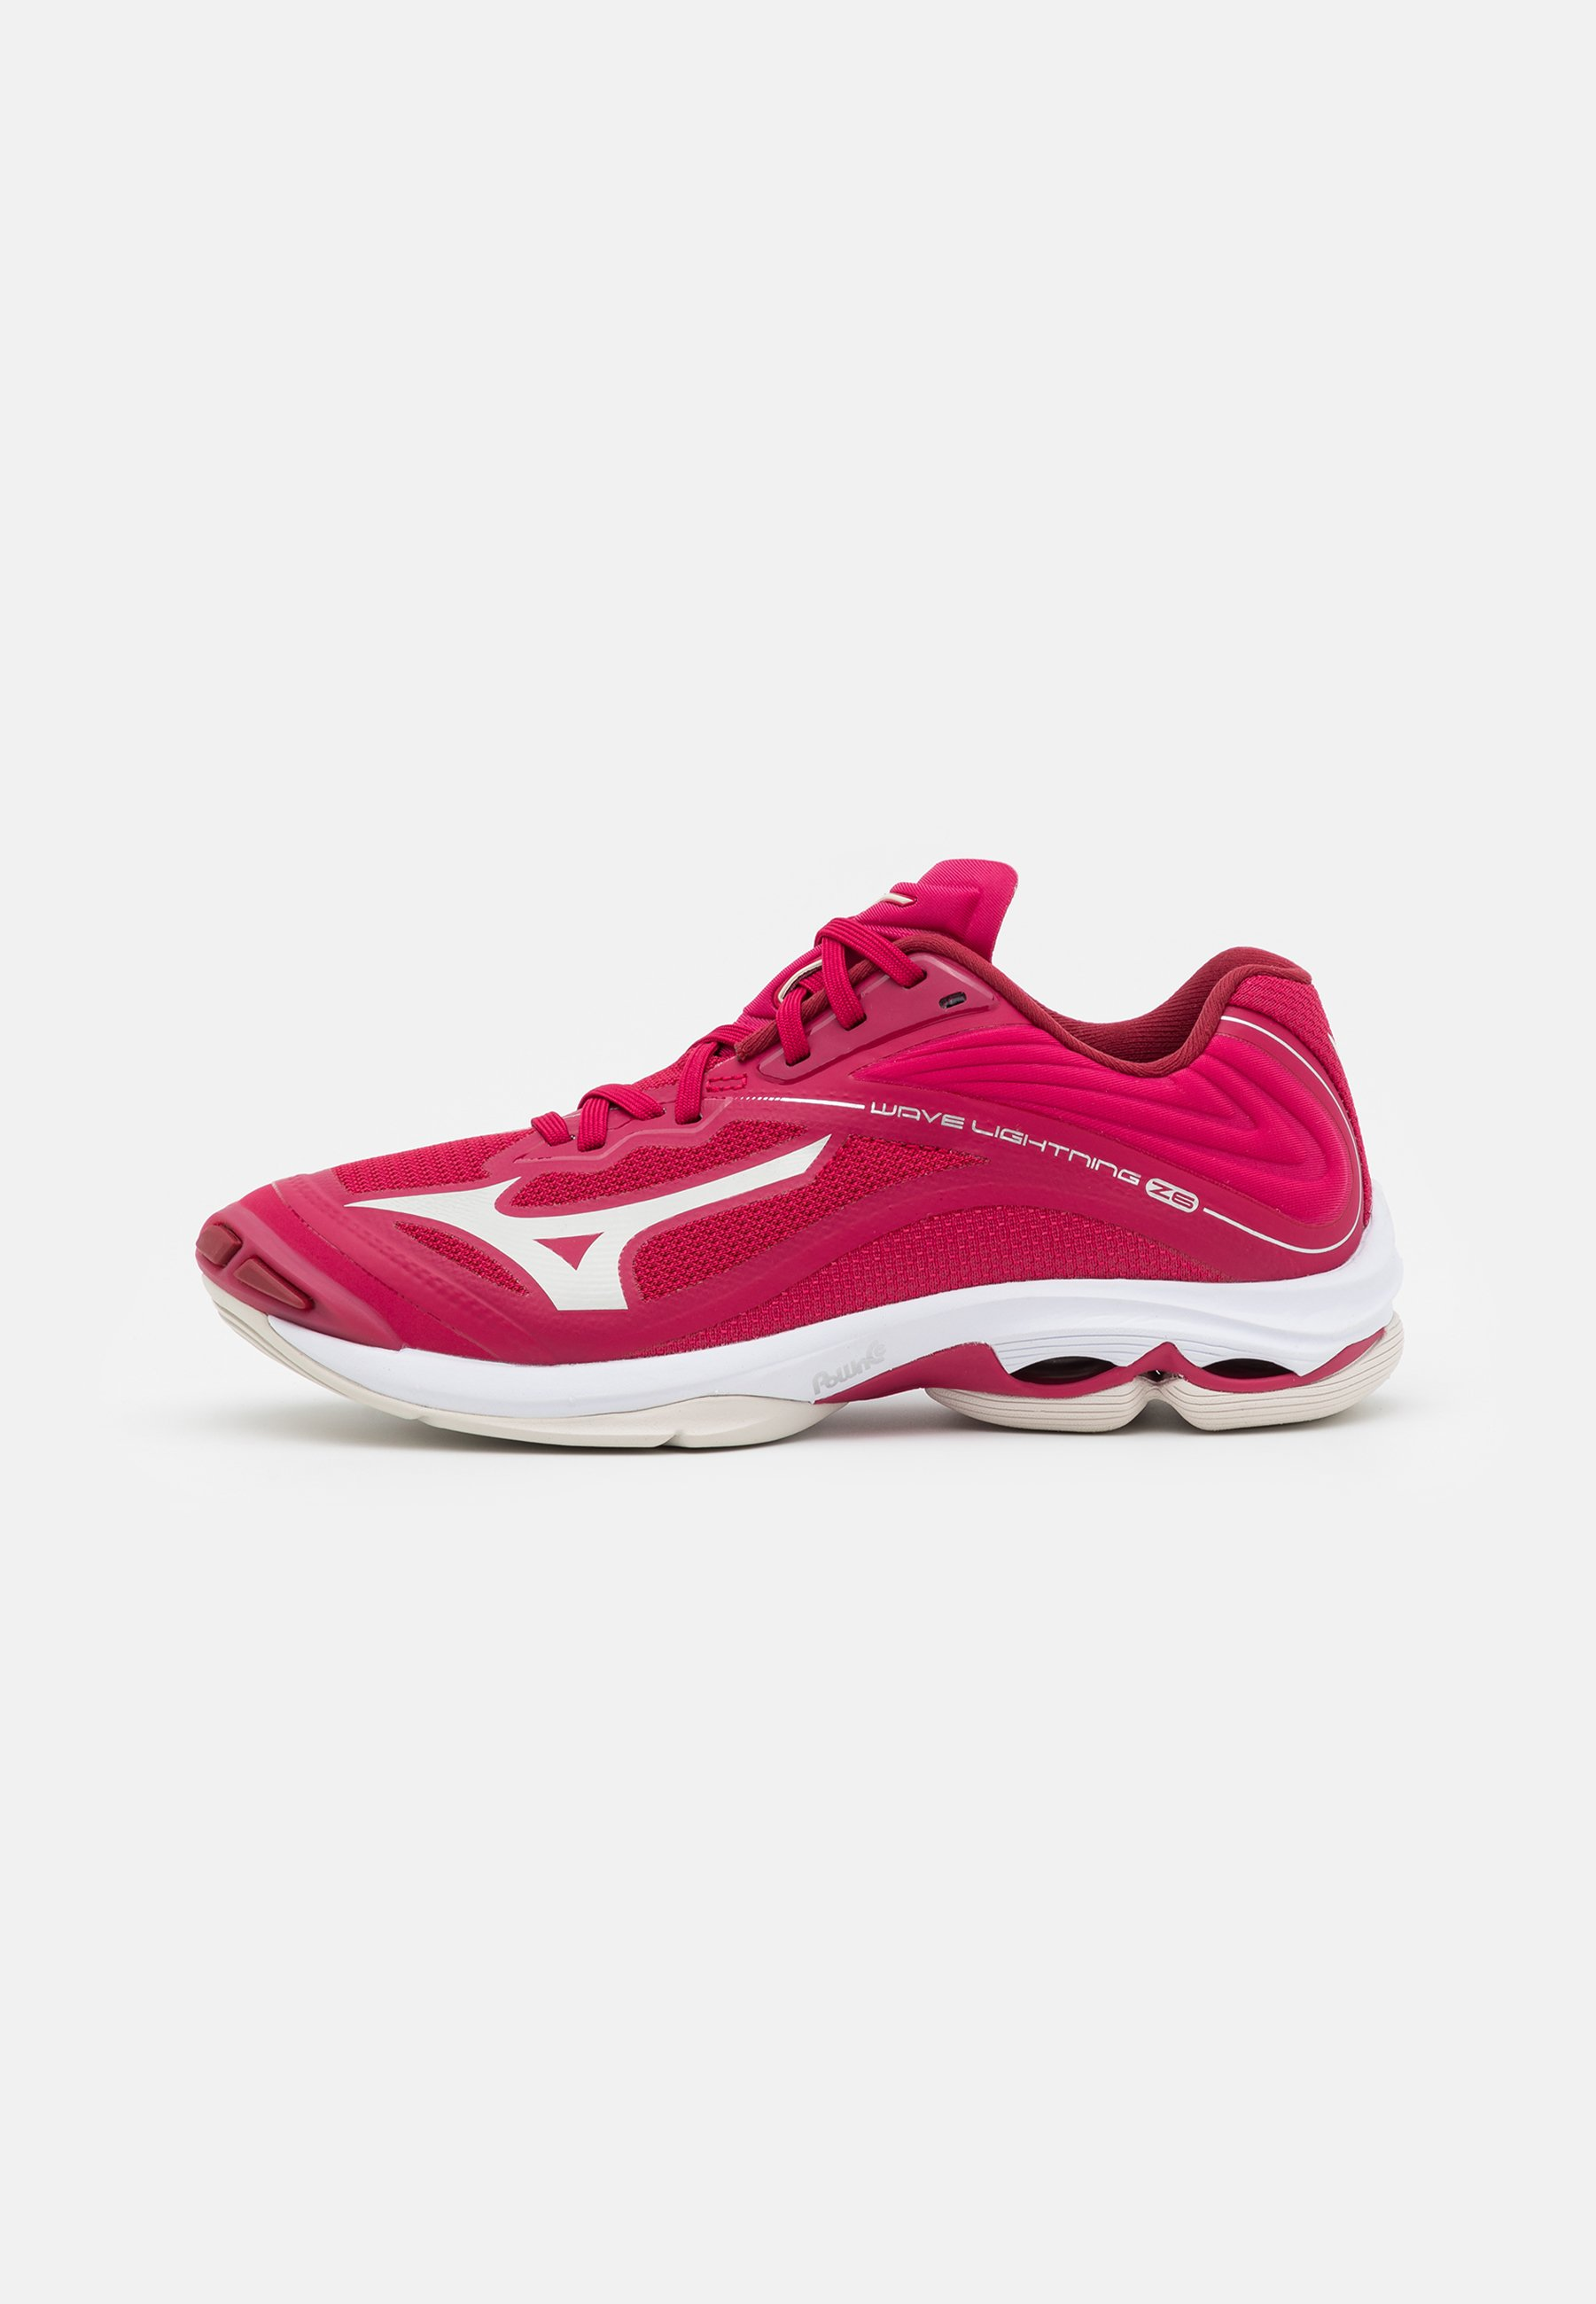 Women WAVE LIGHTNING Z6 - Volleyball shoes